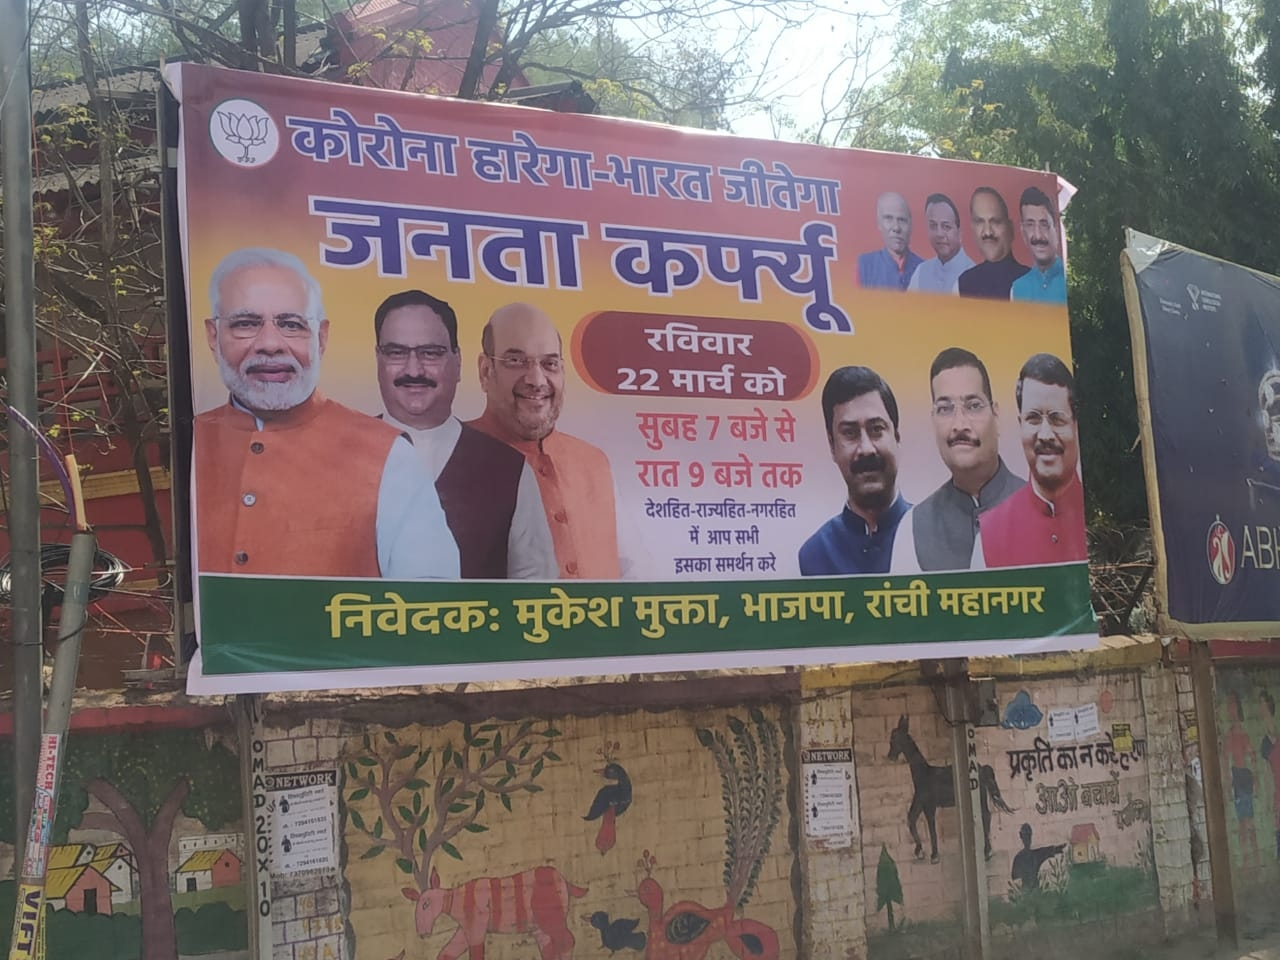 <p>BJP state unit of Jharkhand put up posters and billboards appealing people to participate in 'Janata Curfew' called by PM Narendra Modi to stay at home, stay safe in front…